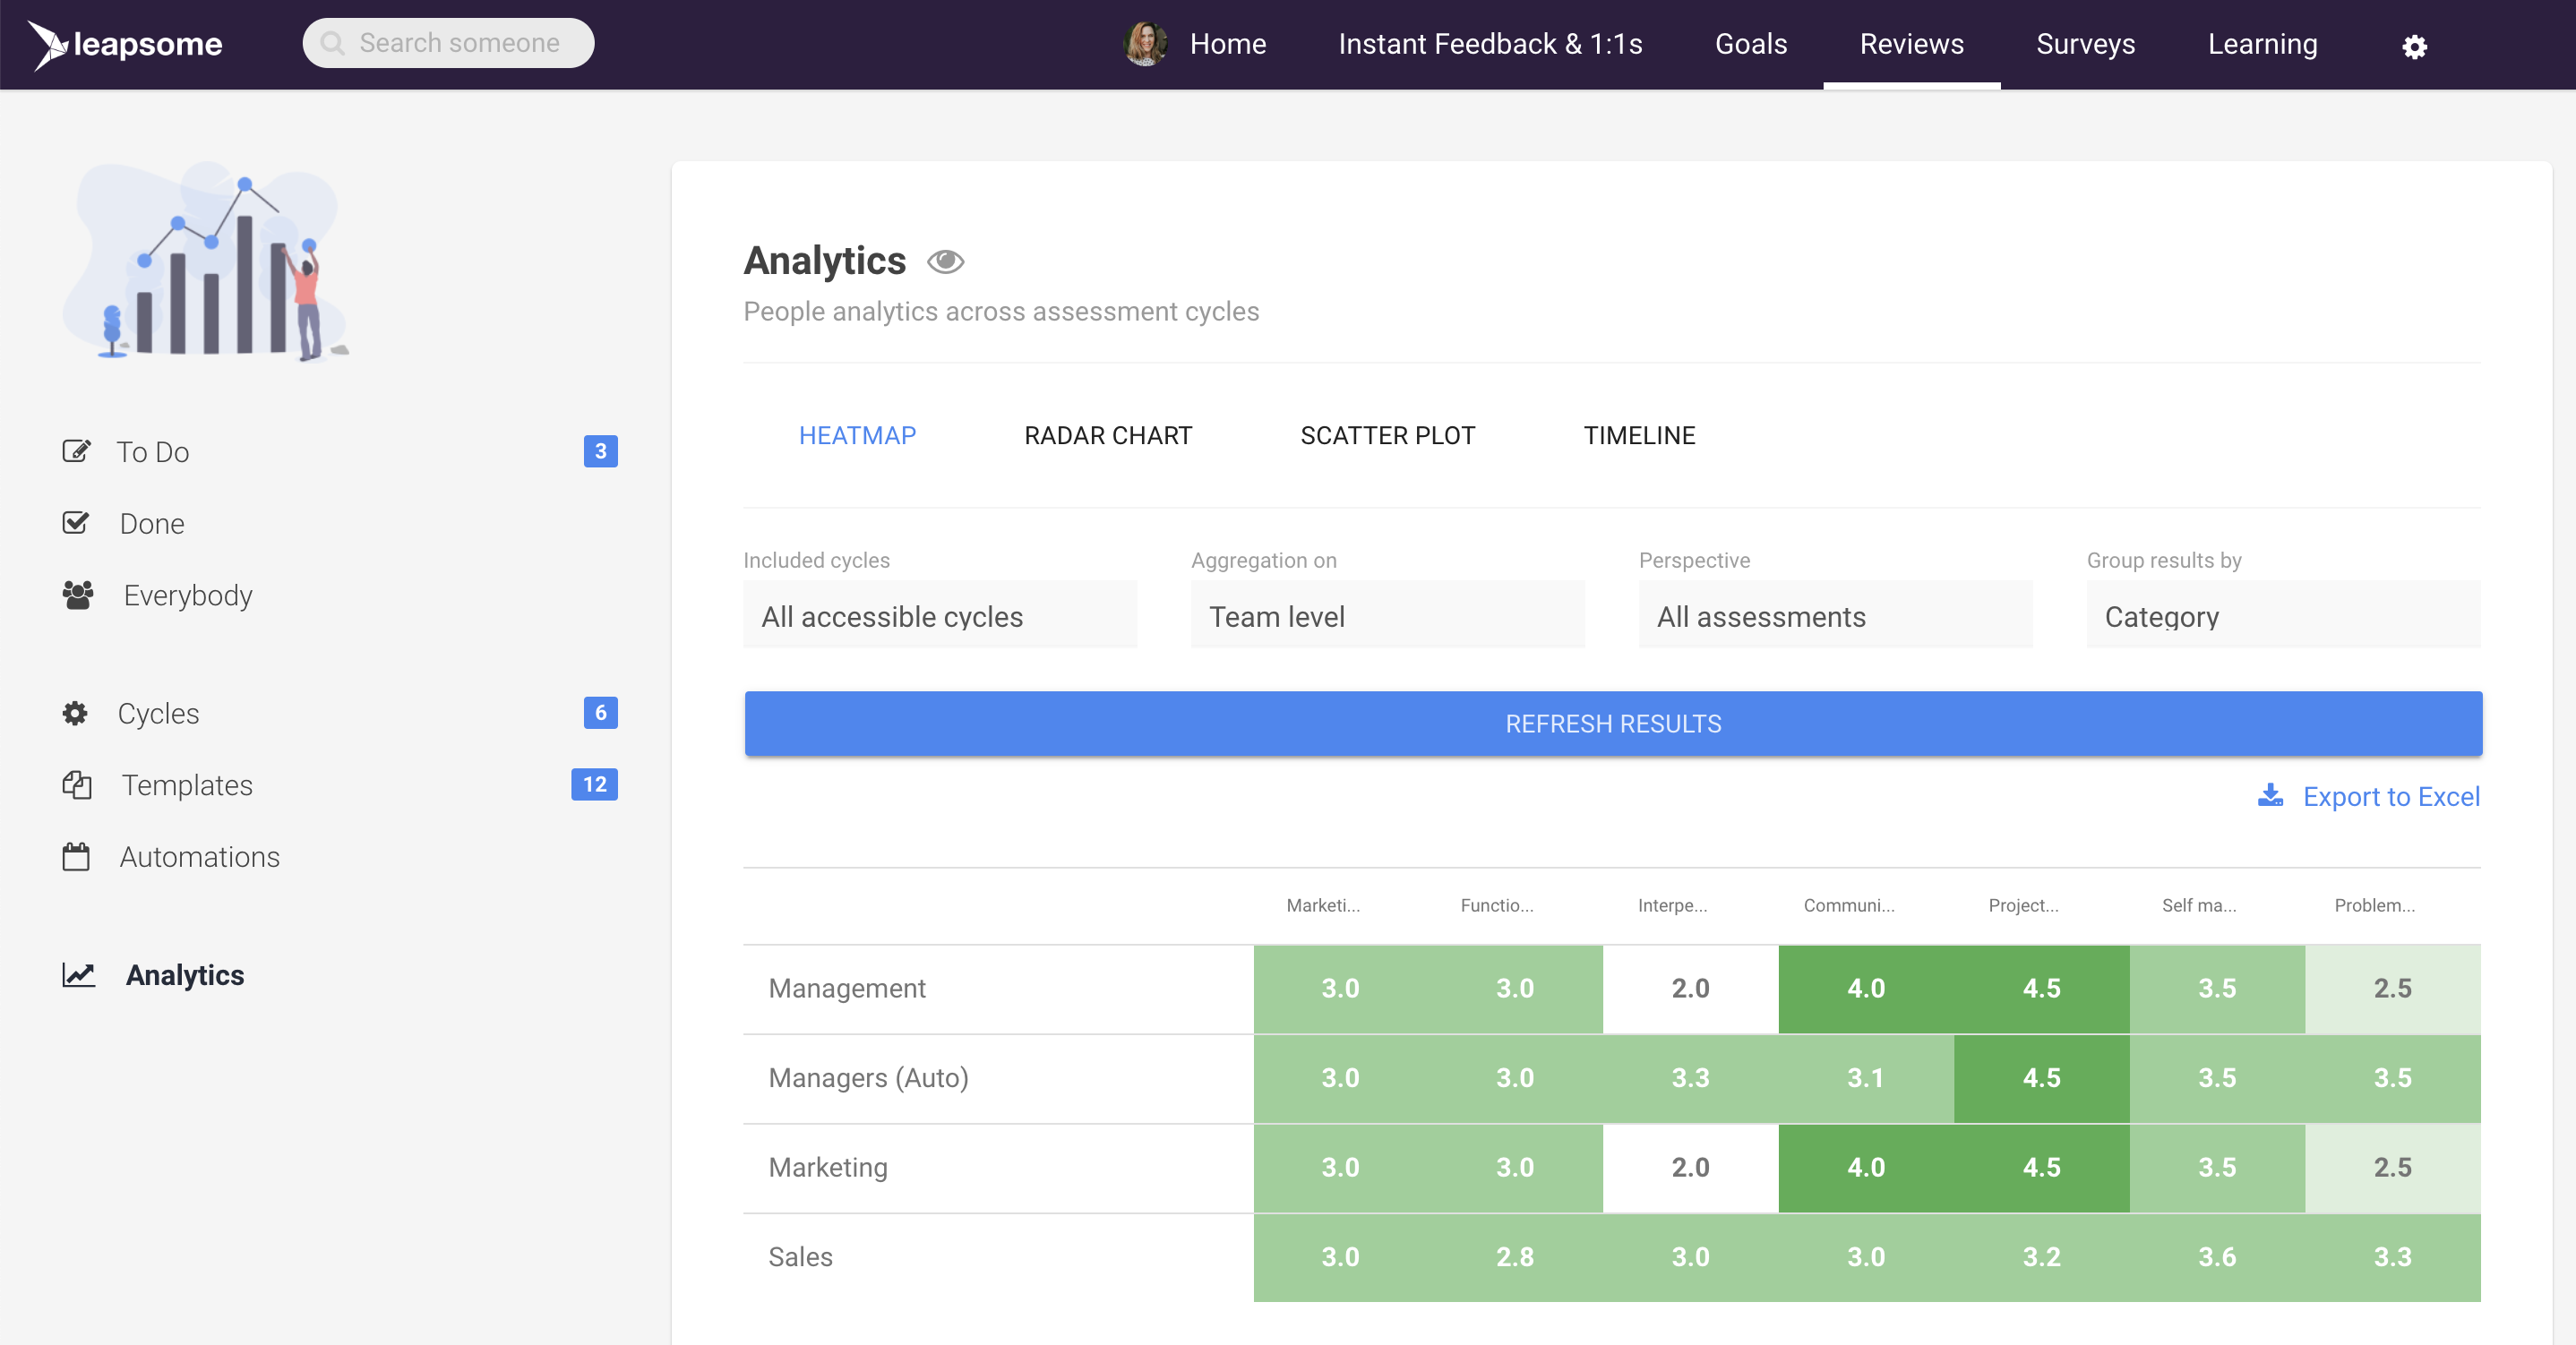 Employee Performance Review Software Screenshot showing analytics and spider diagrams